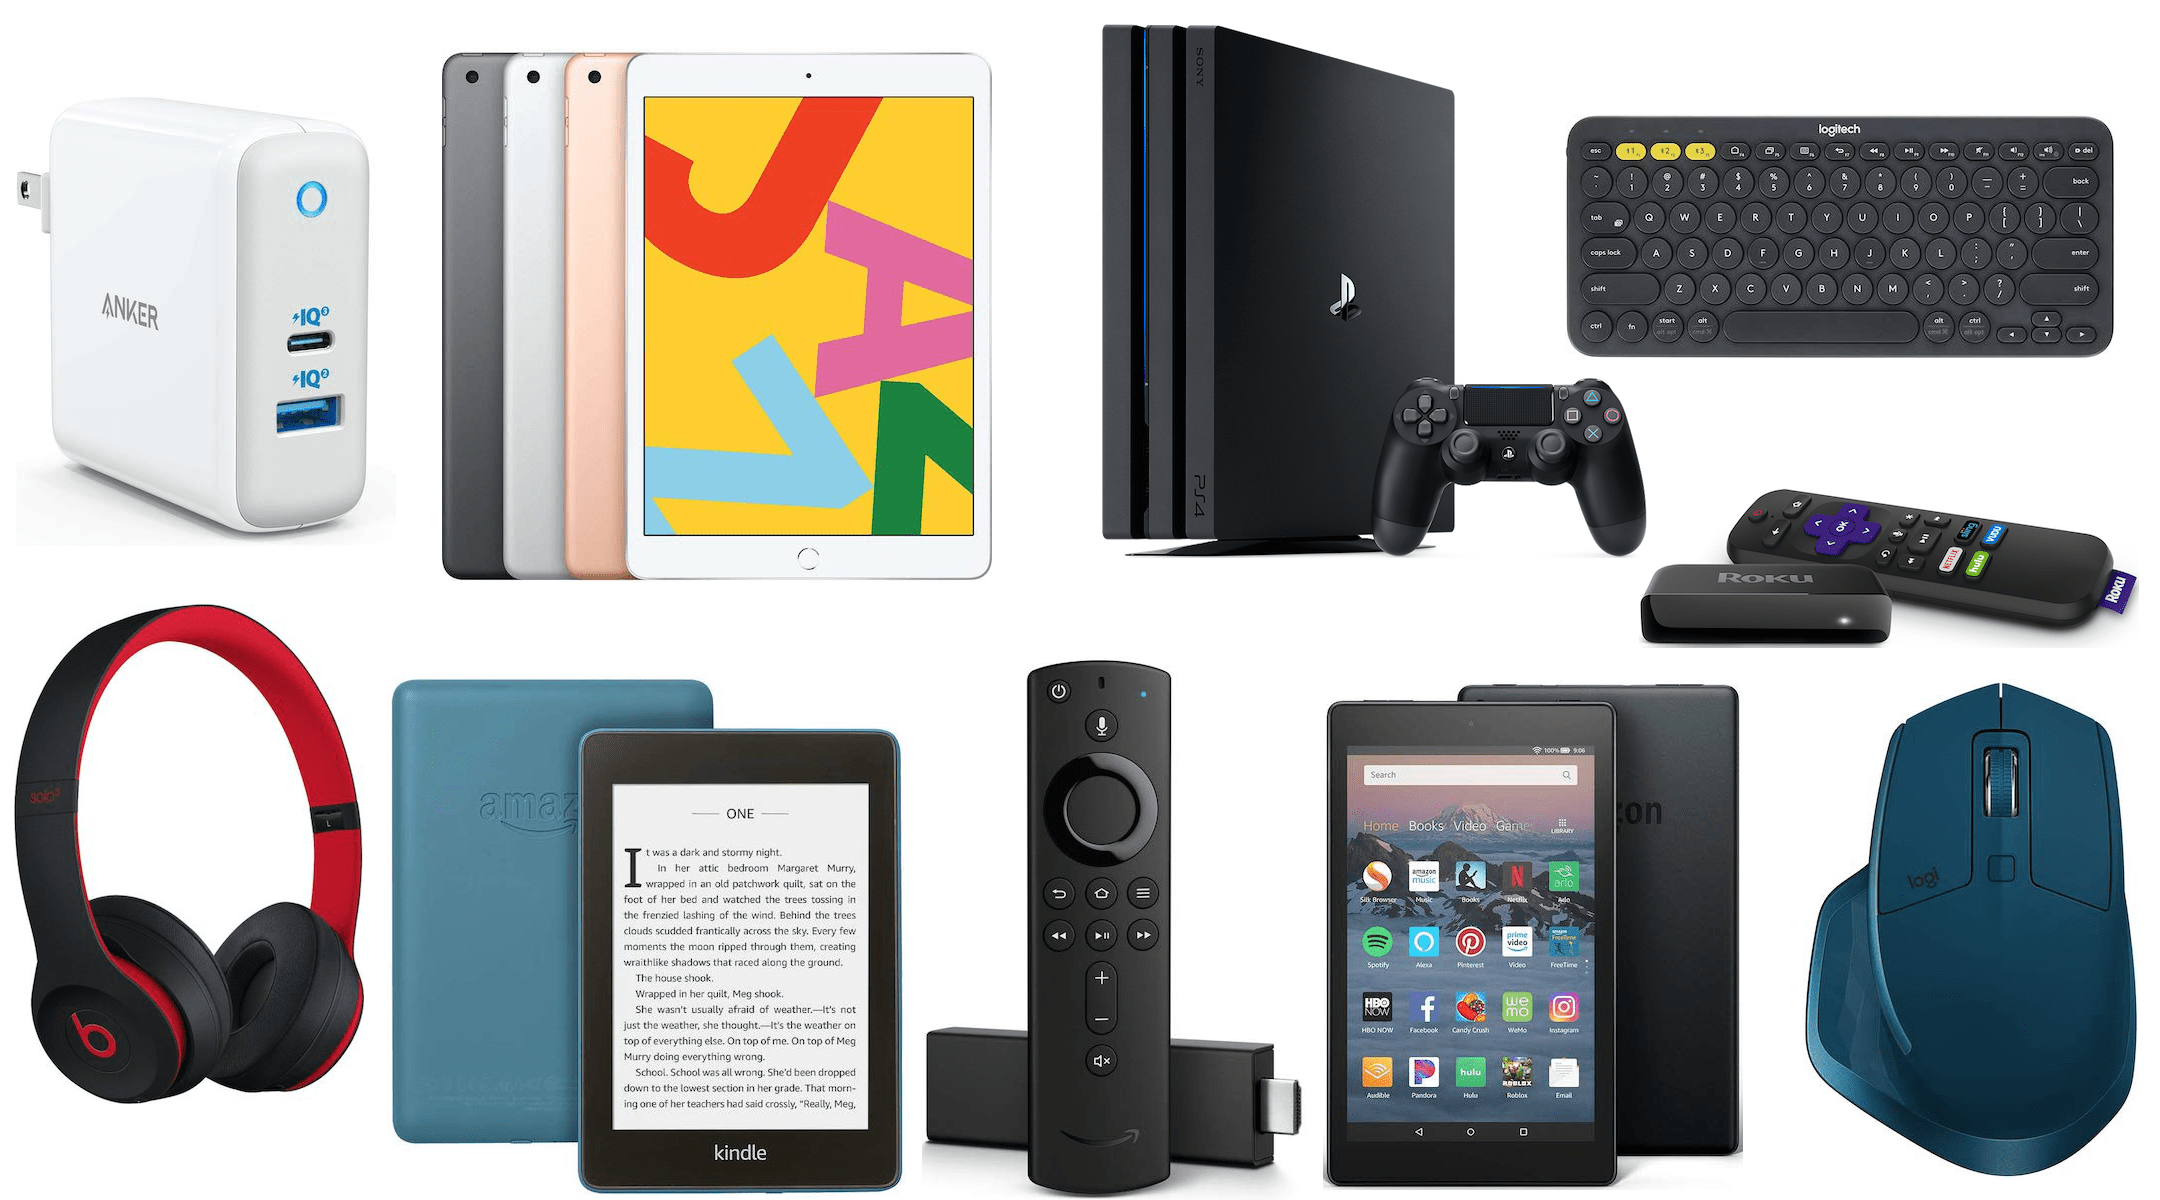 Amazon Audible On Ipad Amazon Deals Discount Kindle Fire Tv Stick And More